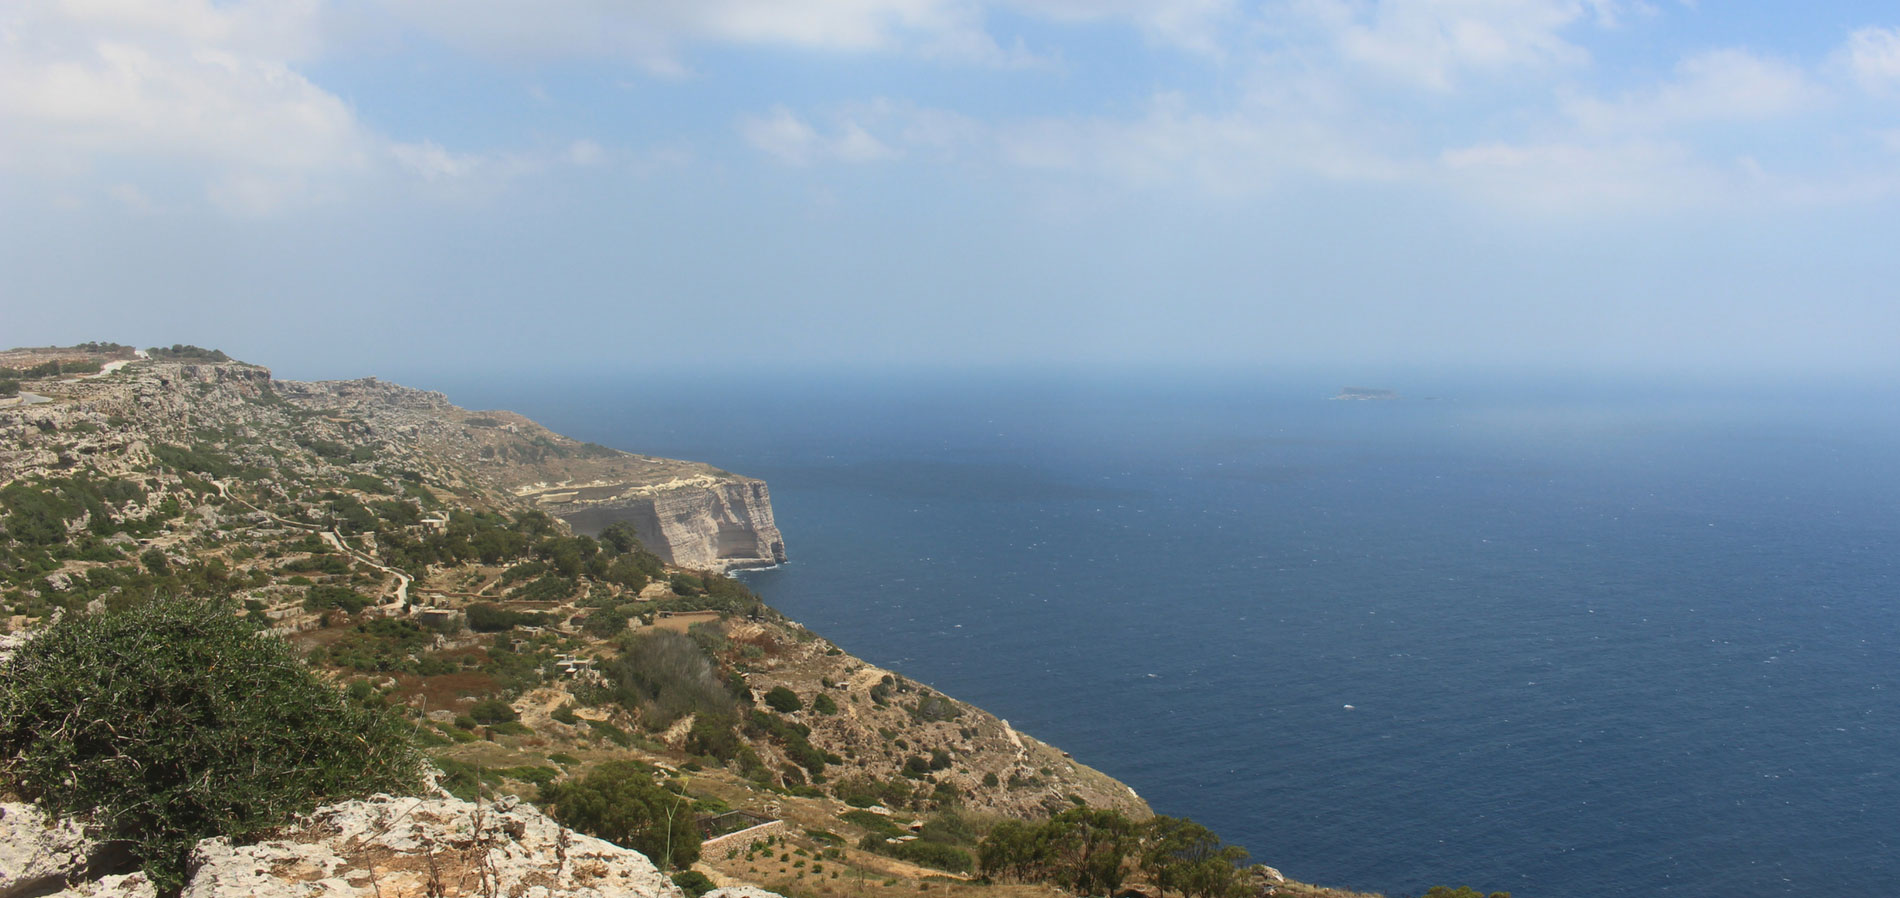 The stunning beauty of the Maltese natural attractions